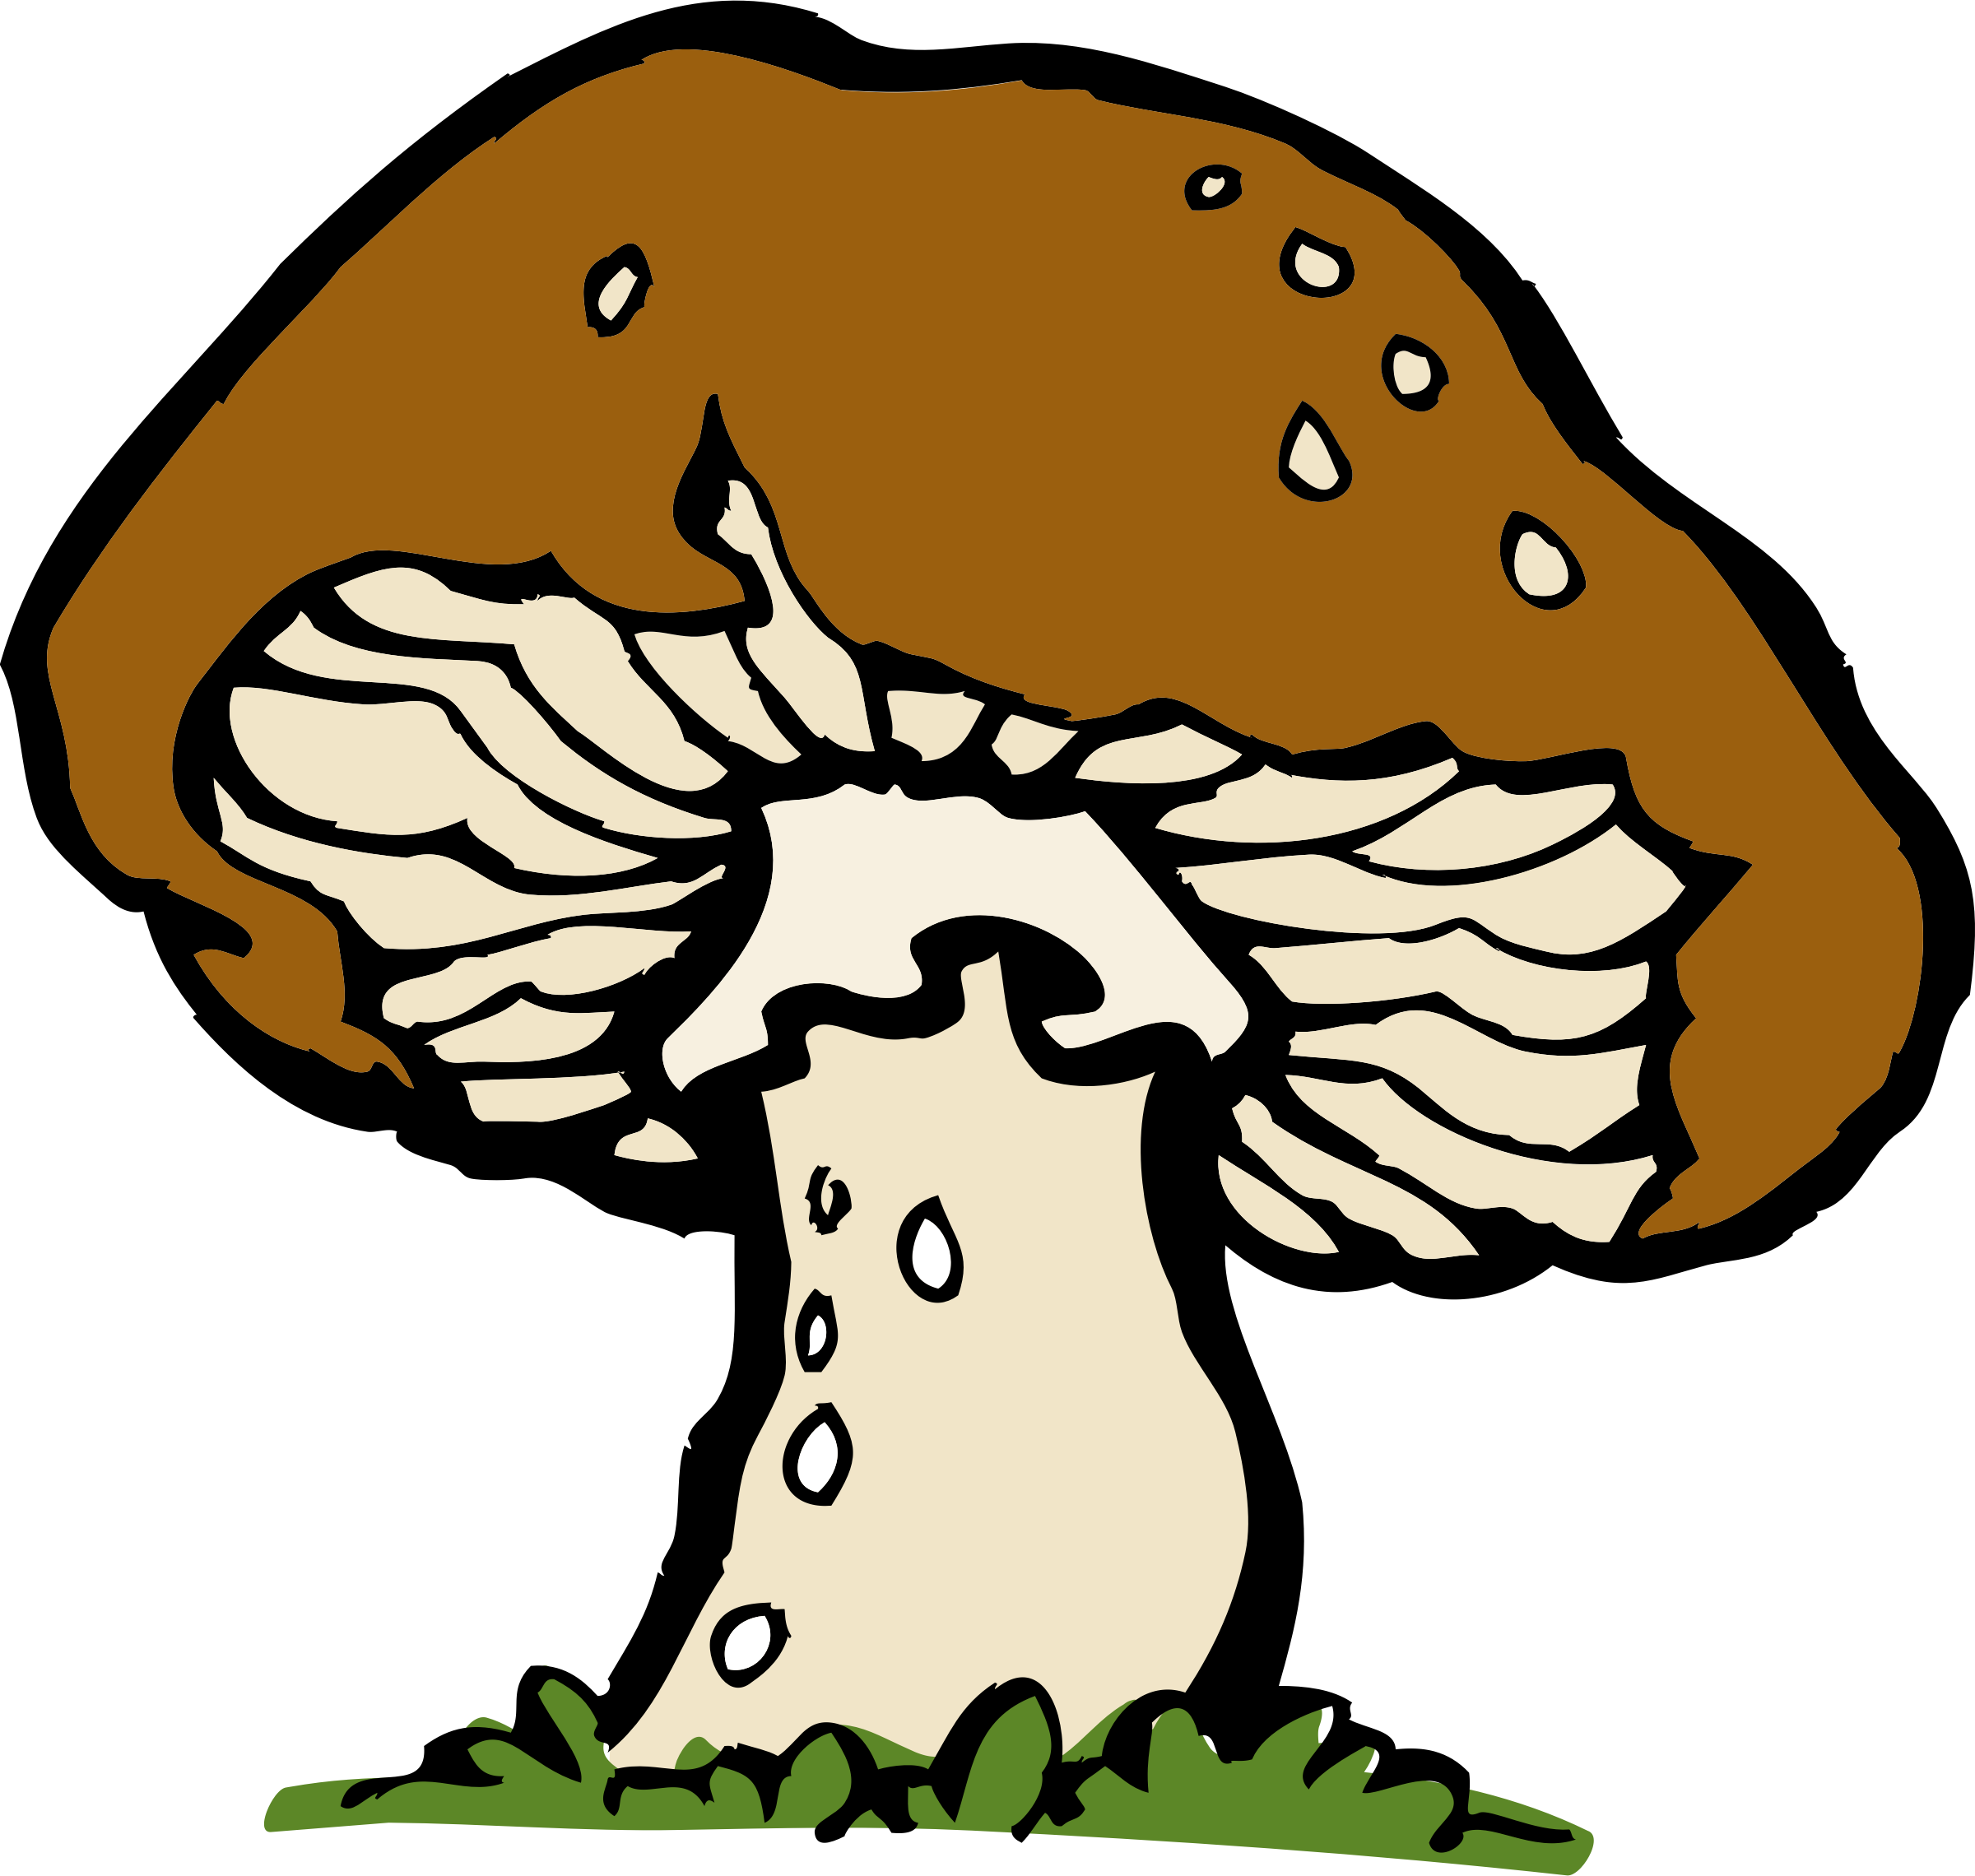 Bacteria clipart decomposer. Worm colorful mushroom free